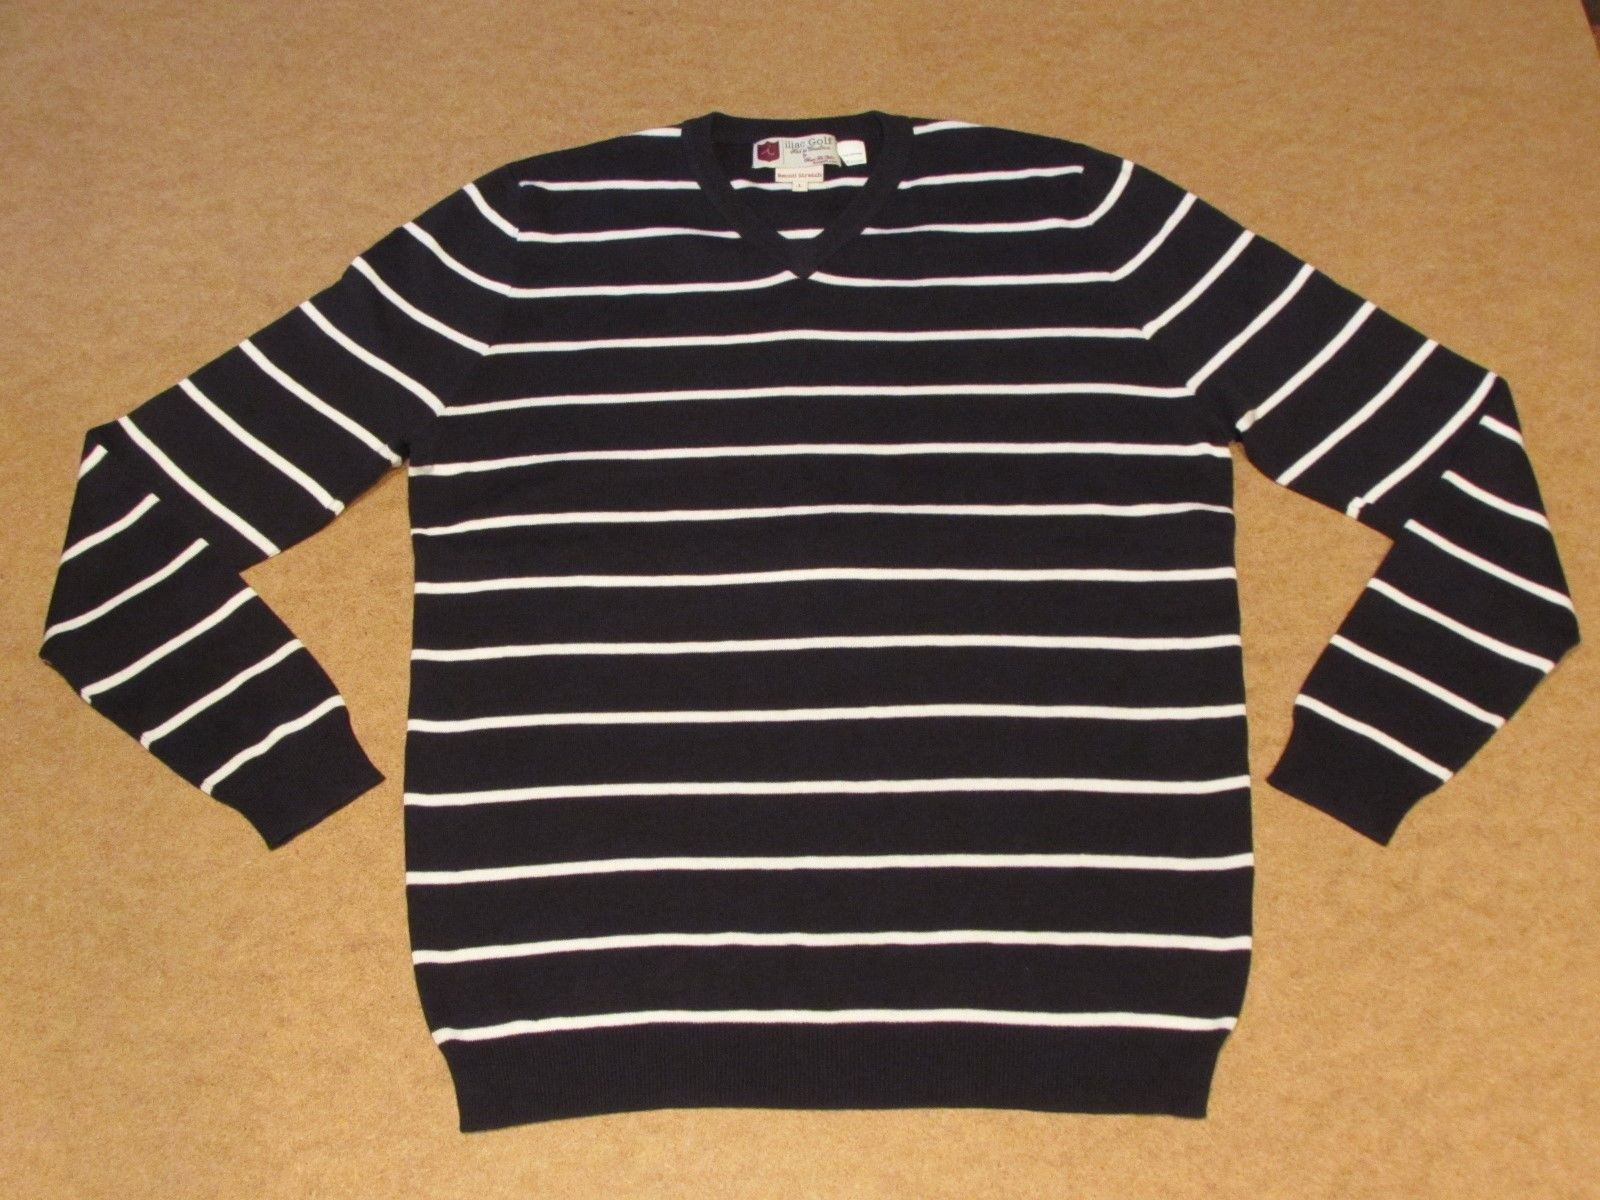 ILIAC GOLF MEN'S BLUE WHITE STRIPED SWEATER....On sale in our ...